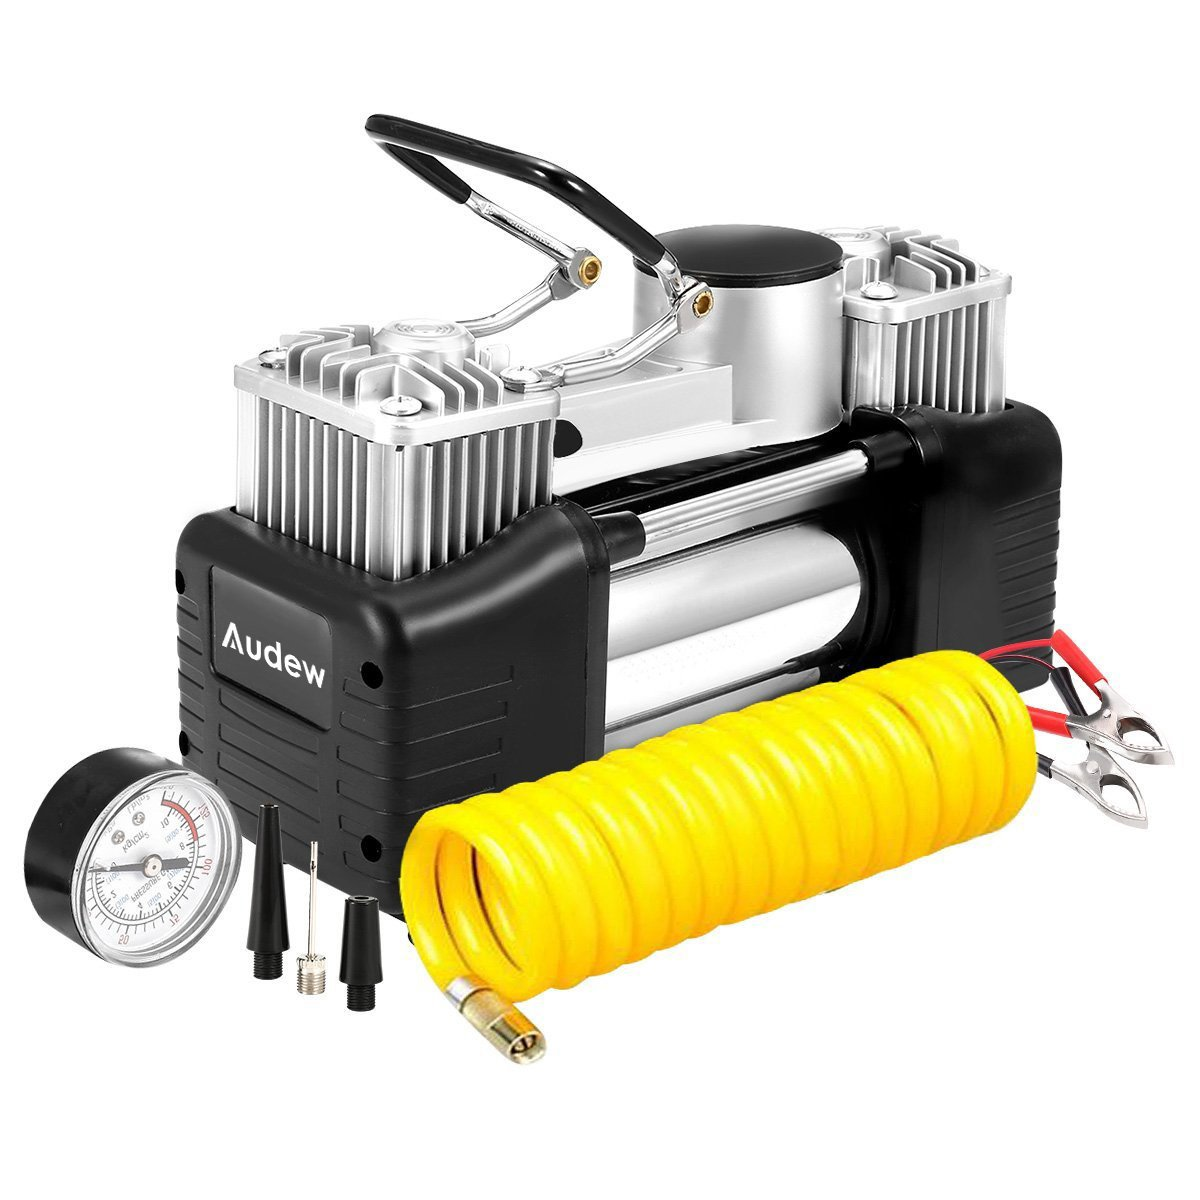 AUDEW Portable Air Compressor Pump, 150PSI Tire Inflator, 12V Heavy Duty Double Cylinders Air Pump for Car, Truck, RV, Bicycle and Other Inflatables